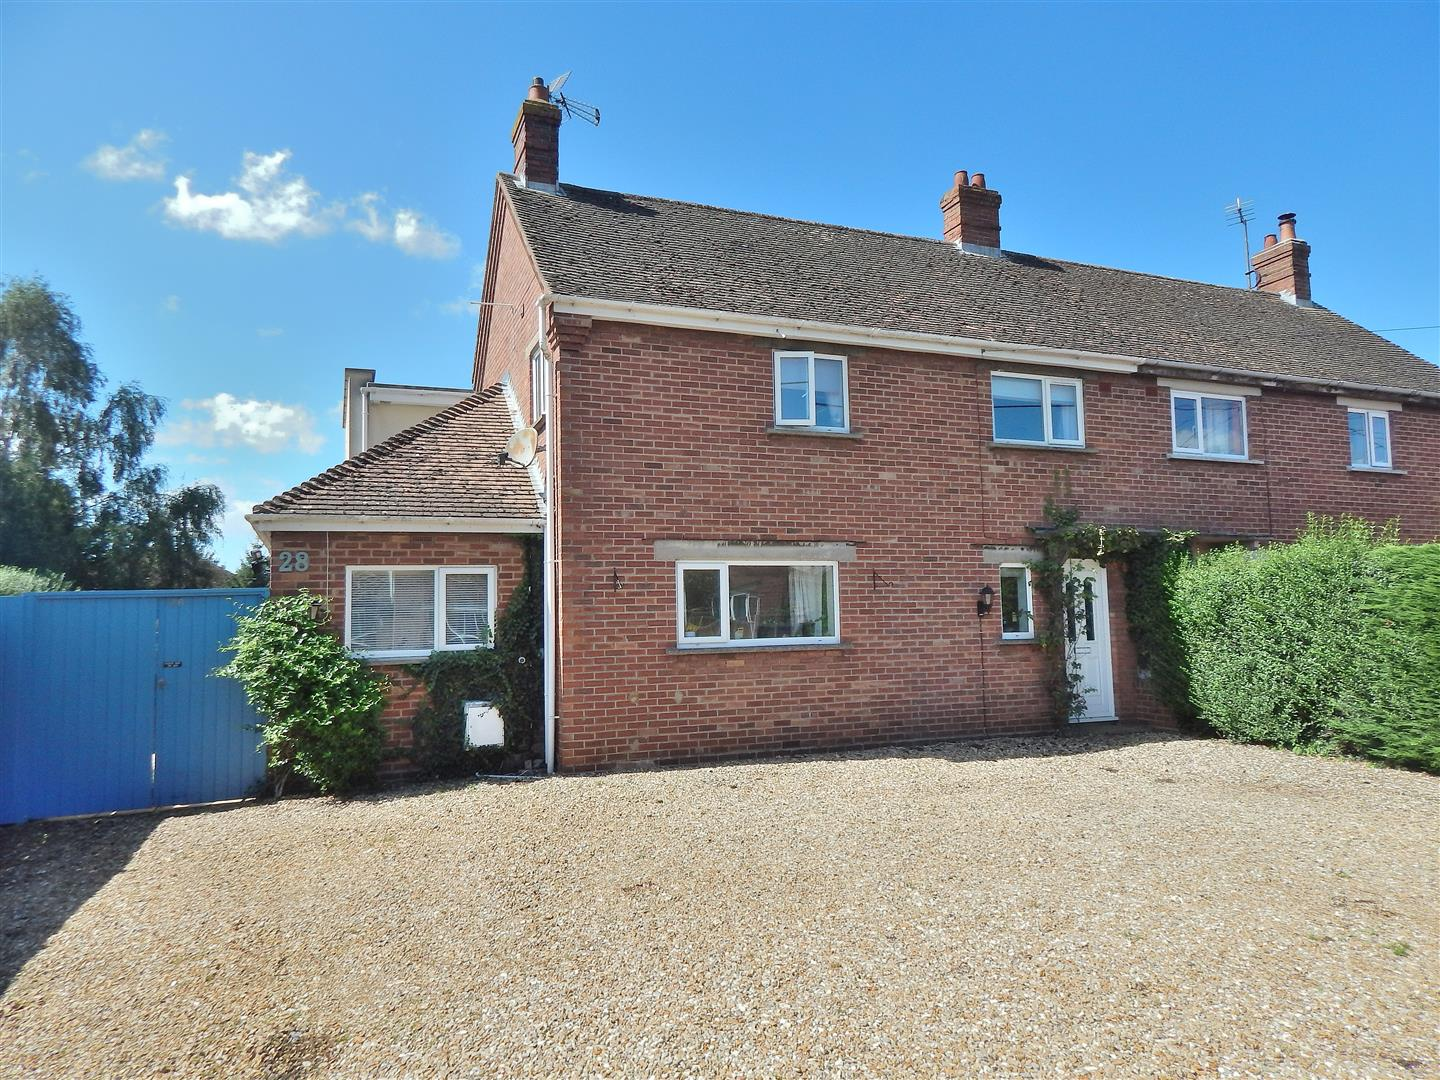 5 bed semi-detached house for sale in King's Lynn, PE31 6HN 0